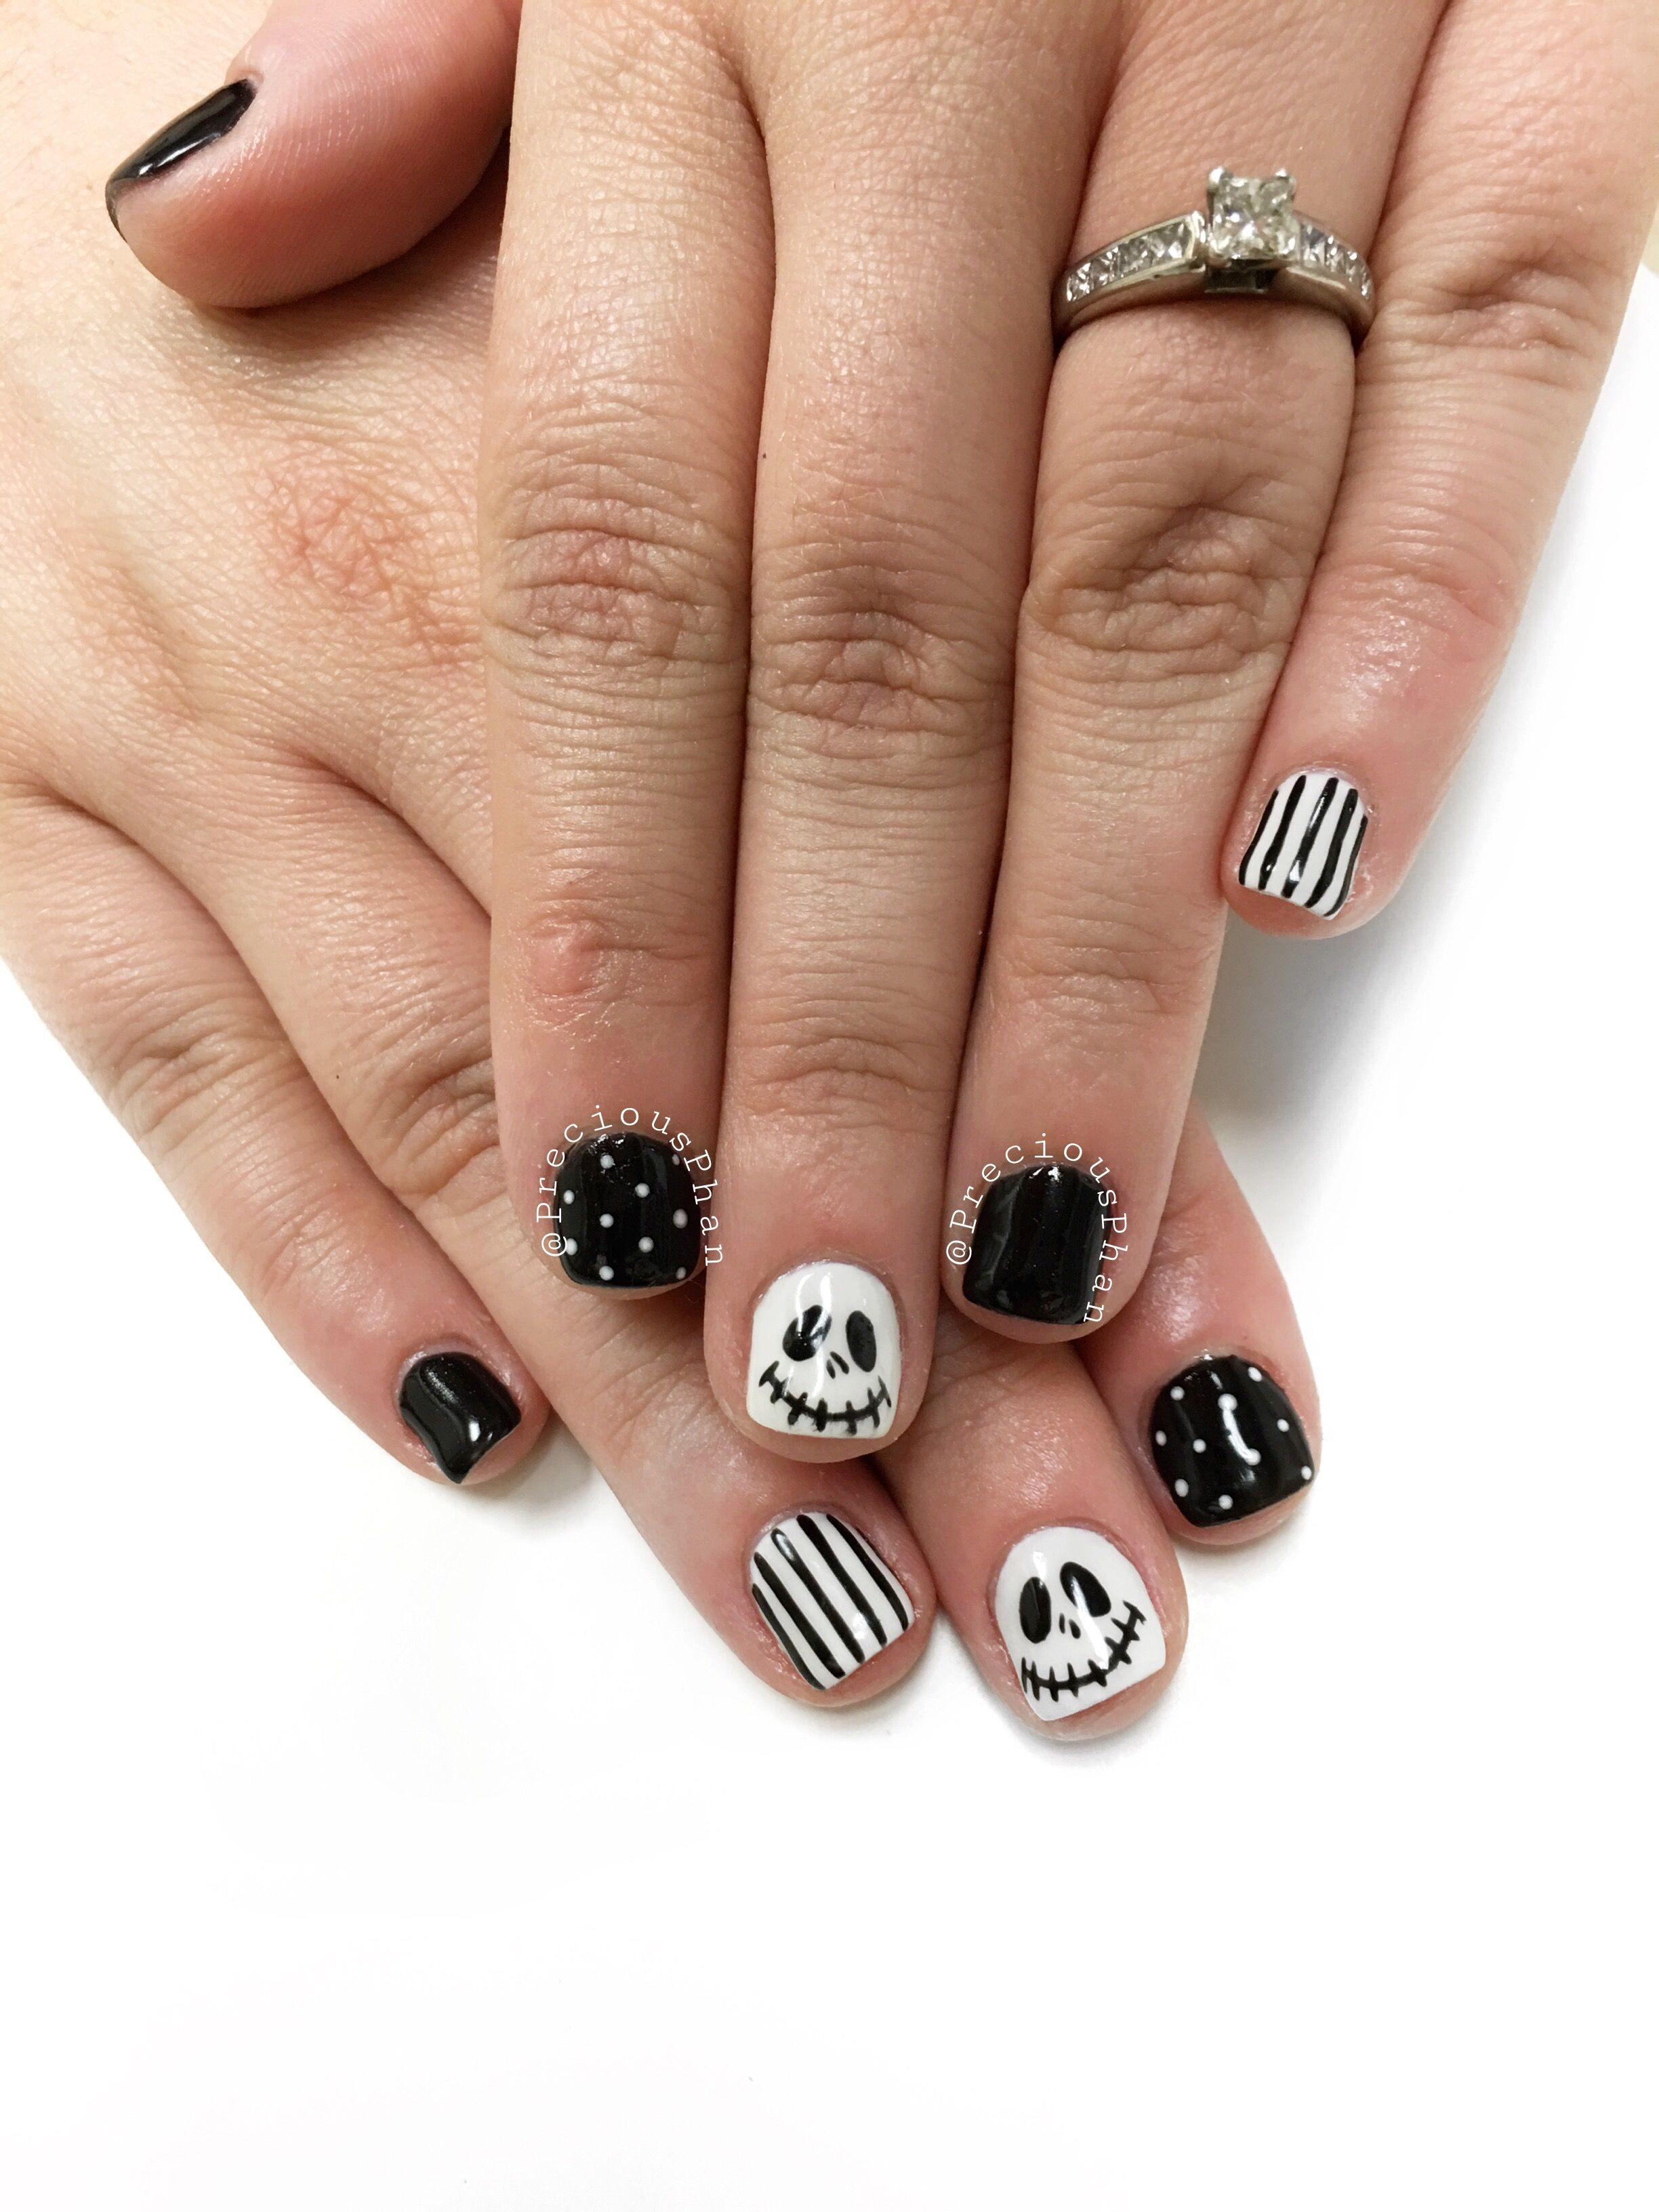 Jack skellington nails. Halloween nails. #PreciousPhan | Precious ...